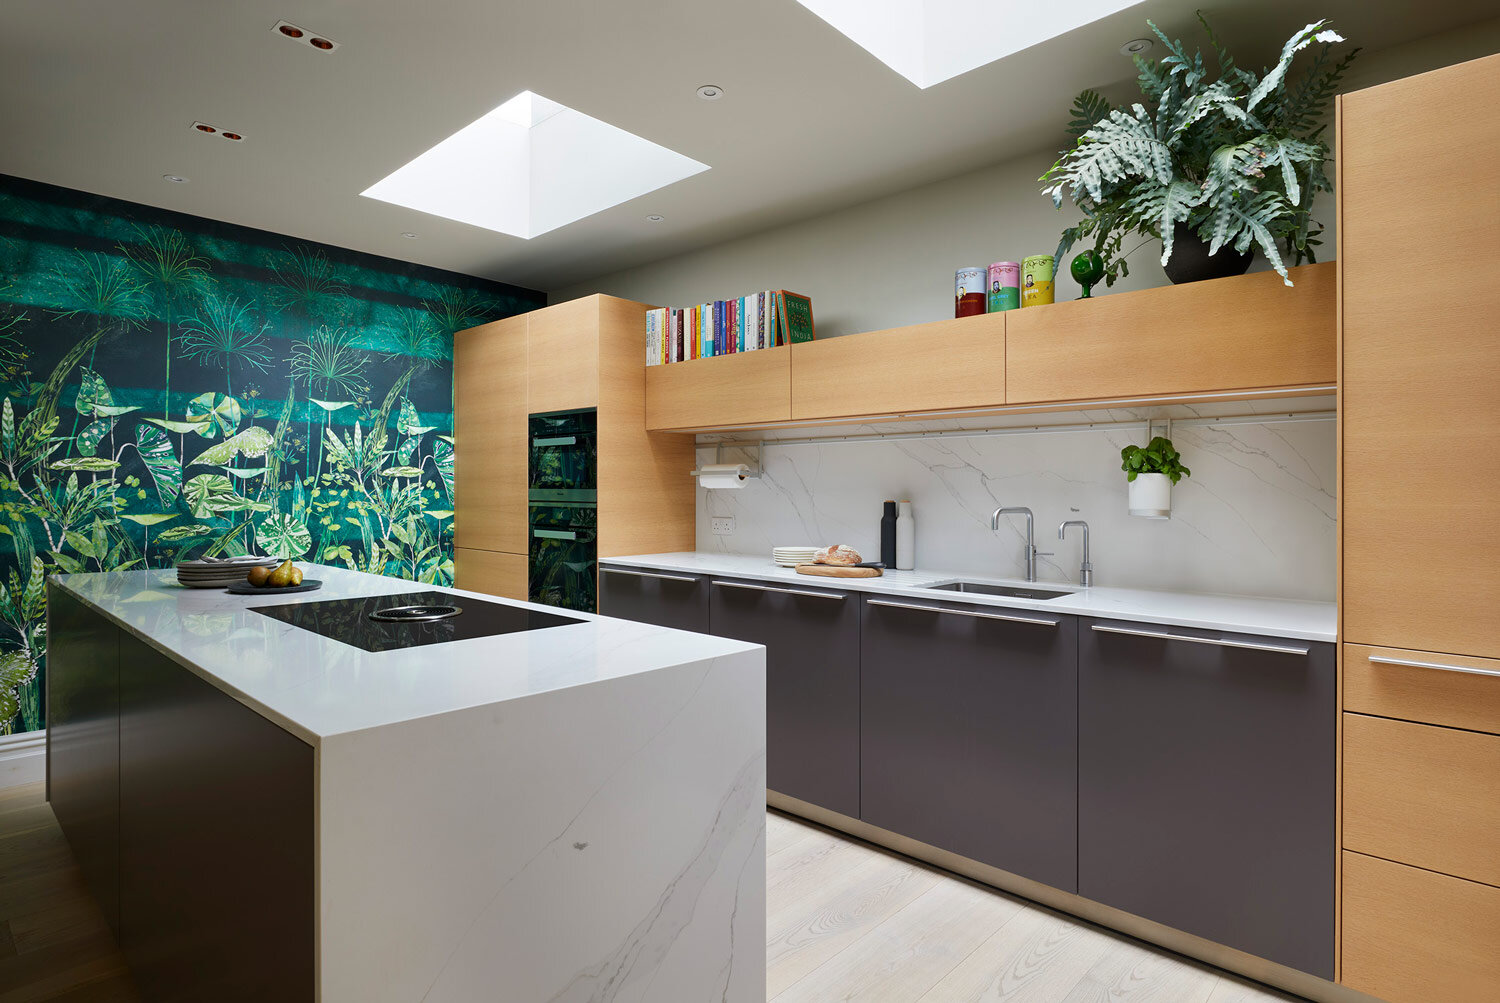 Bulthaup B3 A Kitchen Of Colour And Texture | Luxury Kitchens & Bathrooms | Bath Winchester Swindon | Hobson's Choice